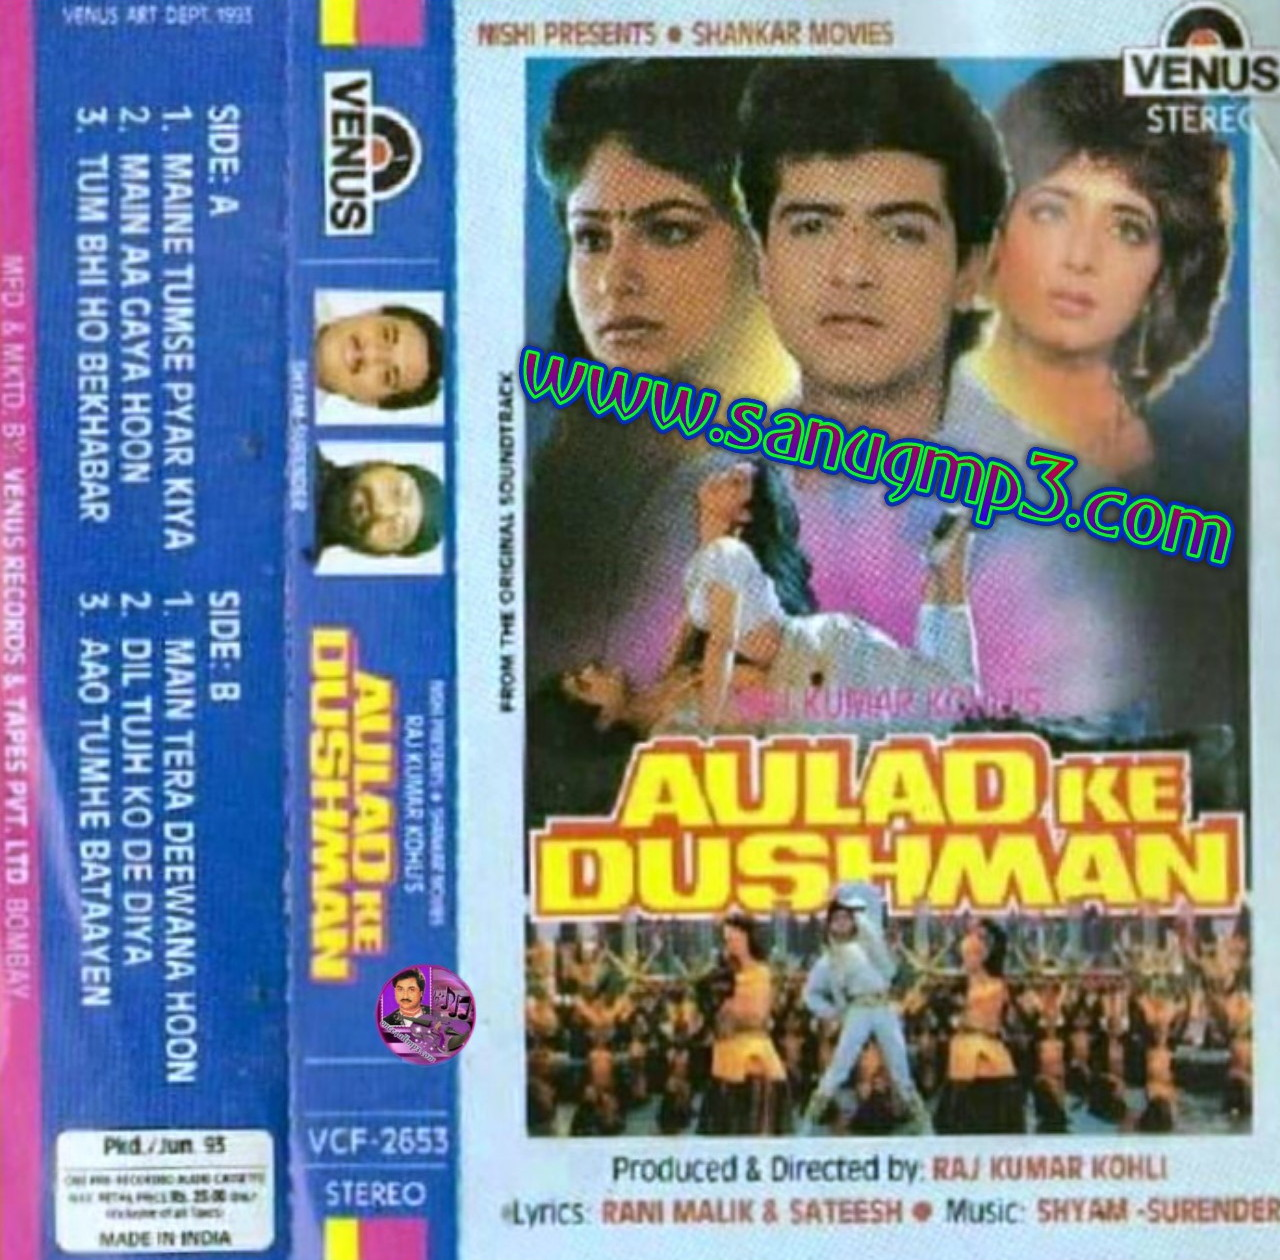 Only Kumar Sanu Mp3 Songs Download Here Aulad Ke Dushman 1993